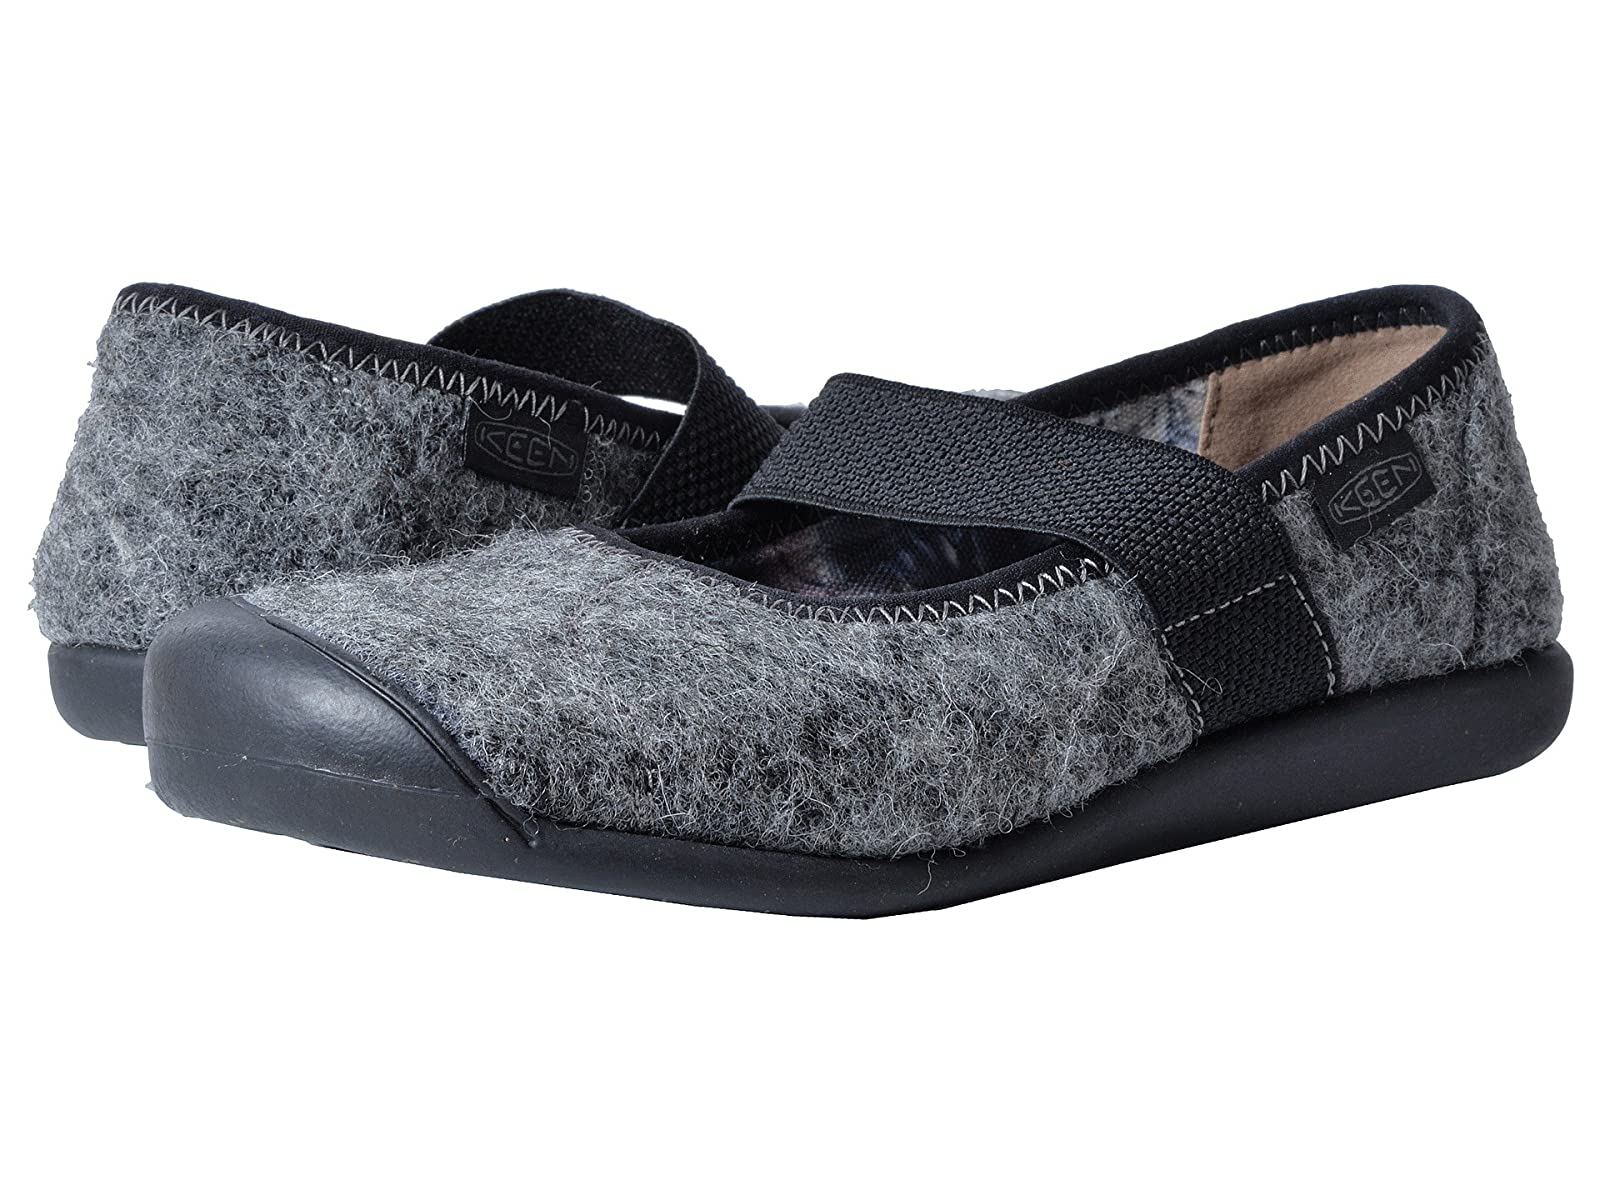 Keen Sienna MJ WoolCheap and distinctive eye-catching shoes